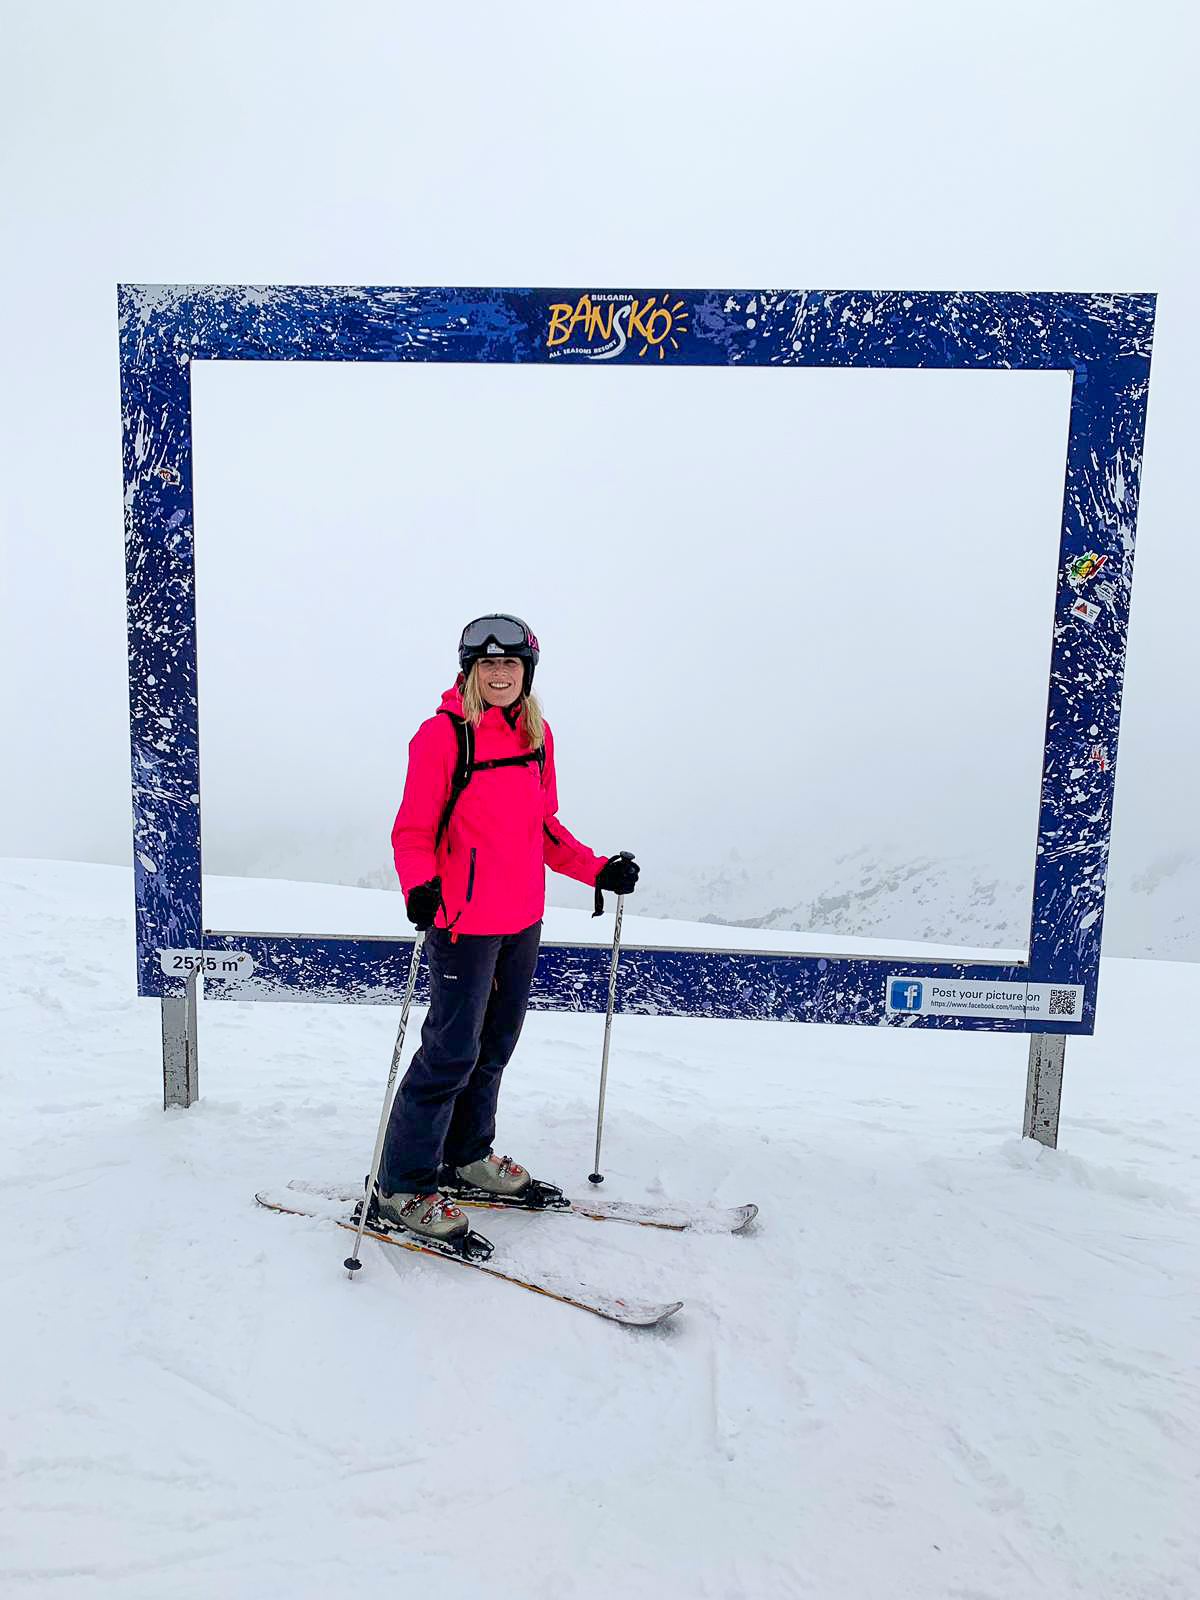 Nikki from The Smiling Food Journal at the top of the Pirin Mountains